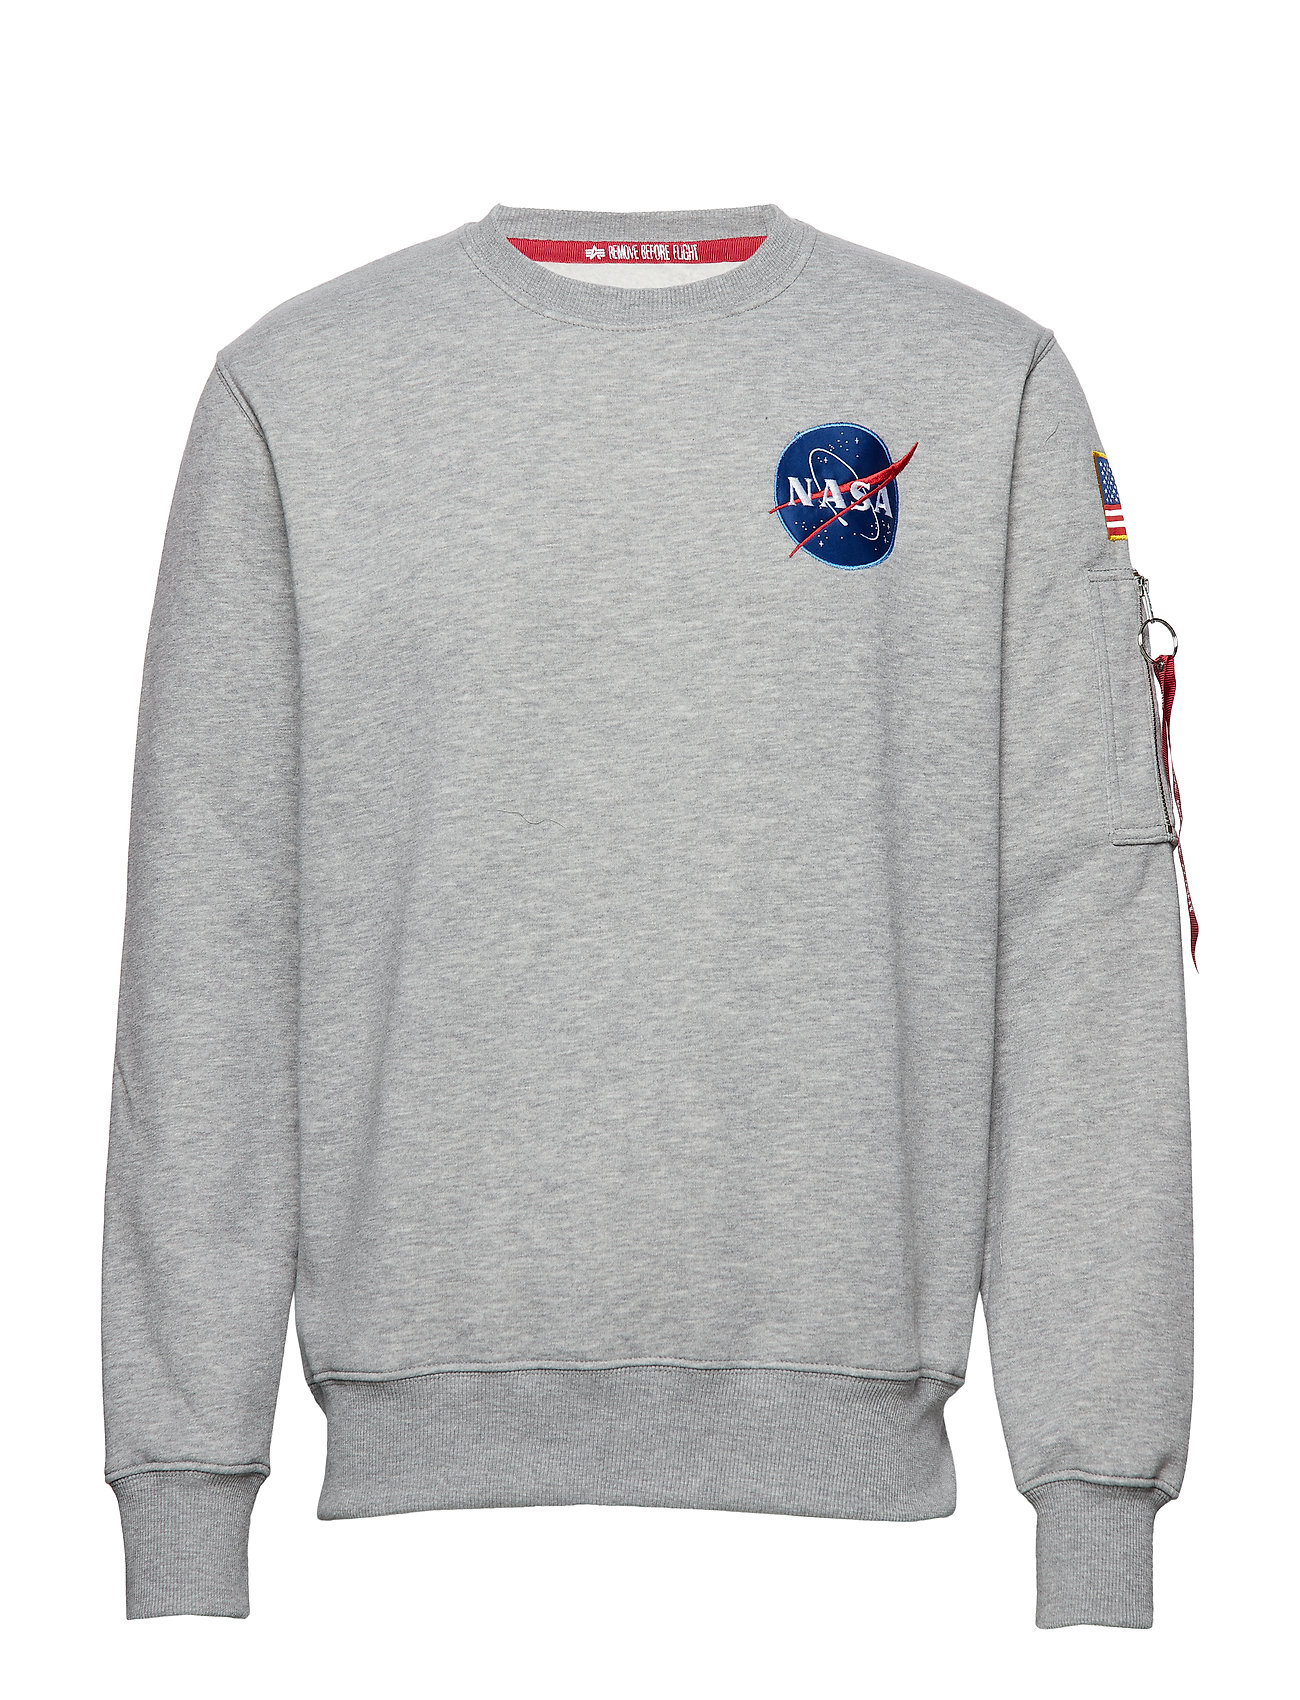 Alpha Industries Space Shuttle Sweater - GREY HEATHER